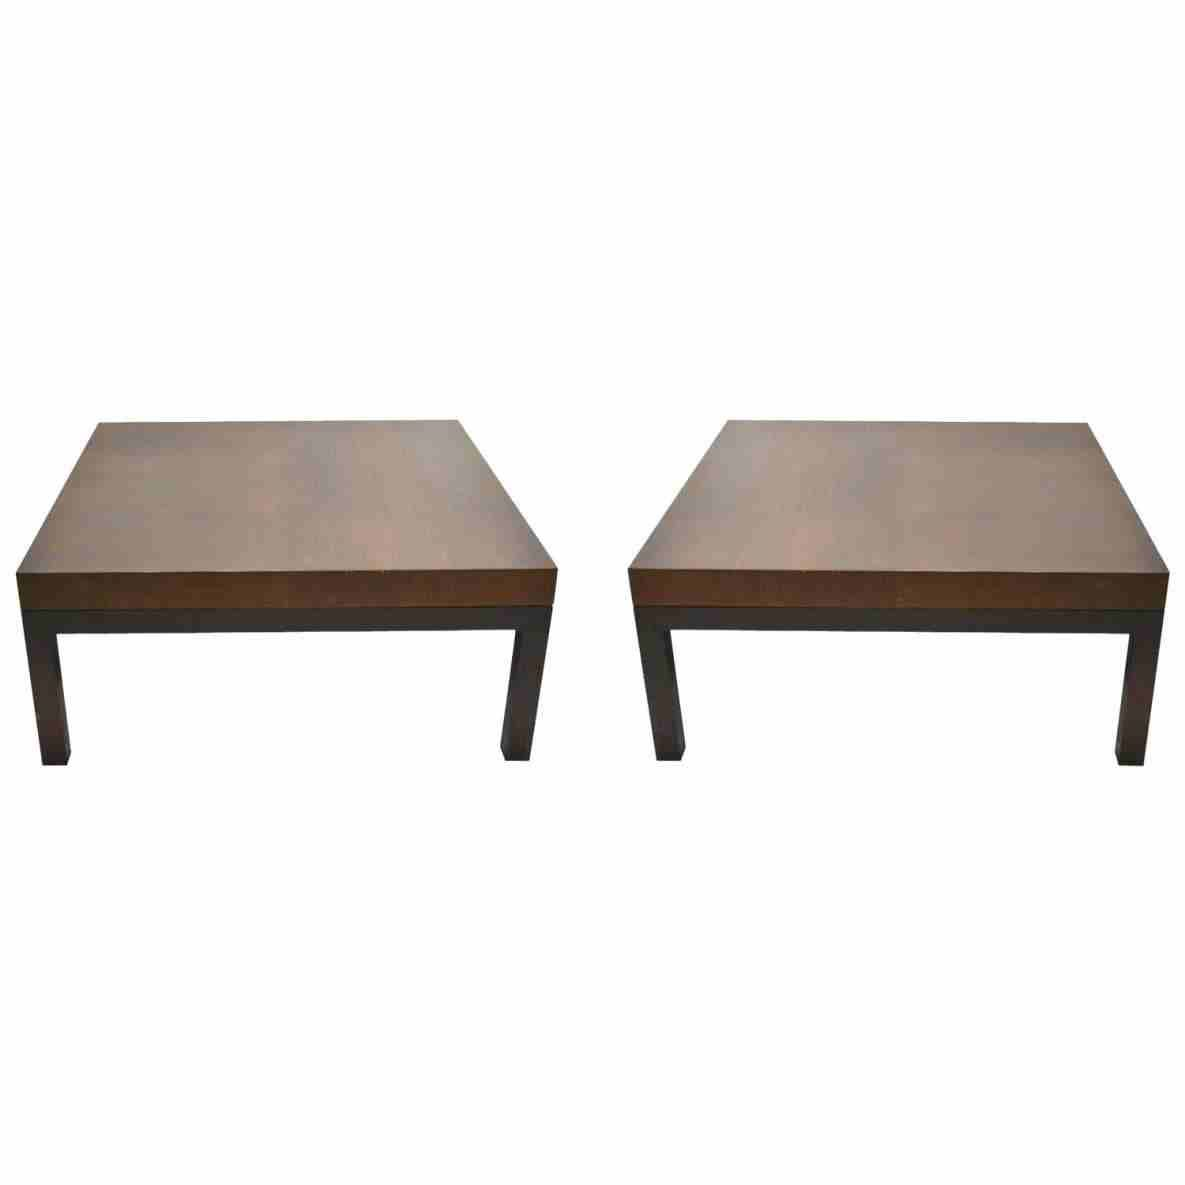 Coffee Table Legs At Lowes   Full Size Of Kitchen:unfinished Table Legs  Lowes Farmhouse Table Legs Husky Farm Table Legs Large Size Of Kitchen: Unfinished ...